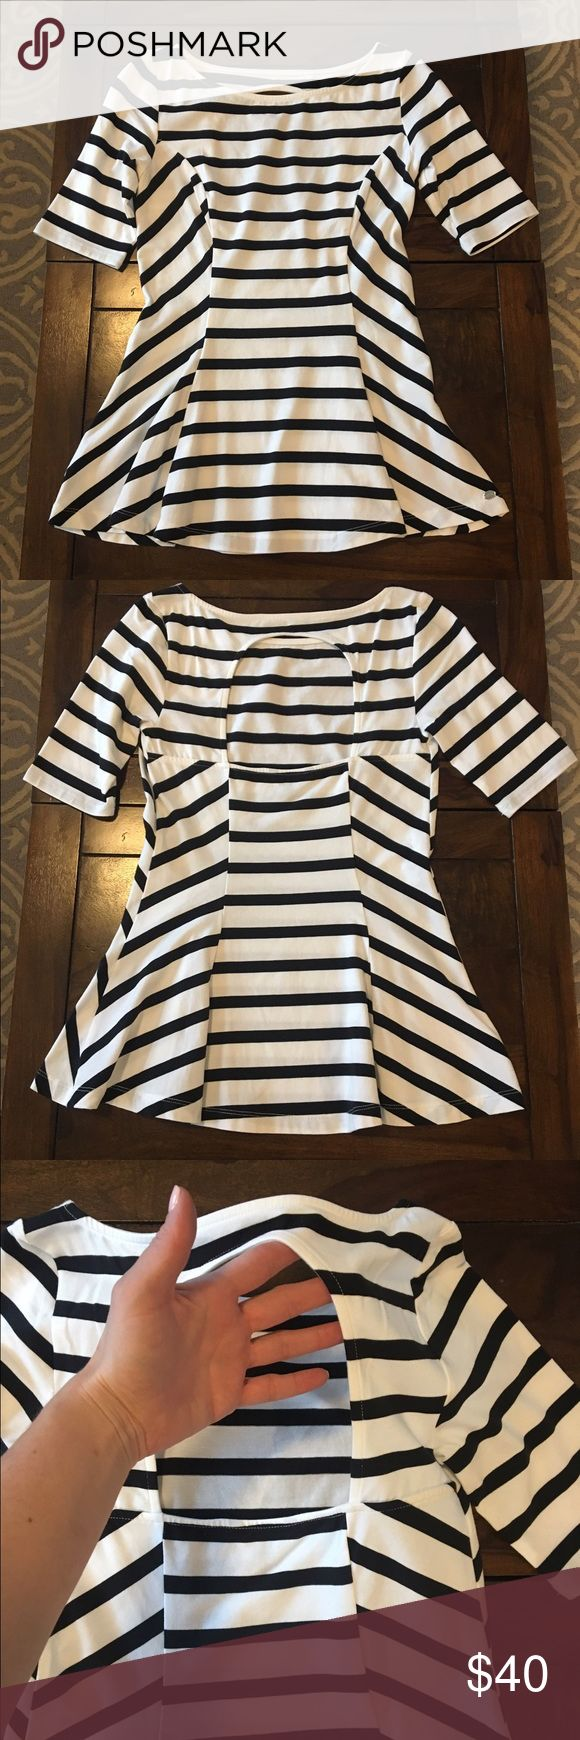 NWOT Guess white and black stripe peplum top NWOT- never worn.  Guess black and white peplum top with cut out back design. Guess Tops Tees - Short Sleeve